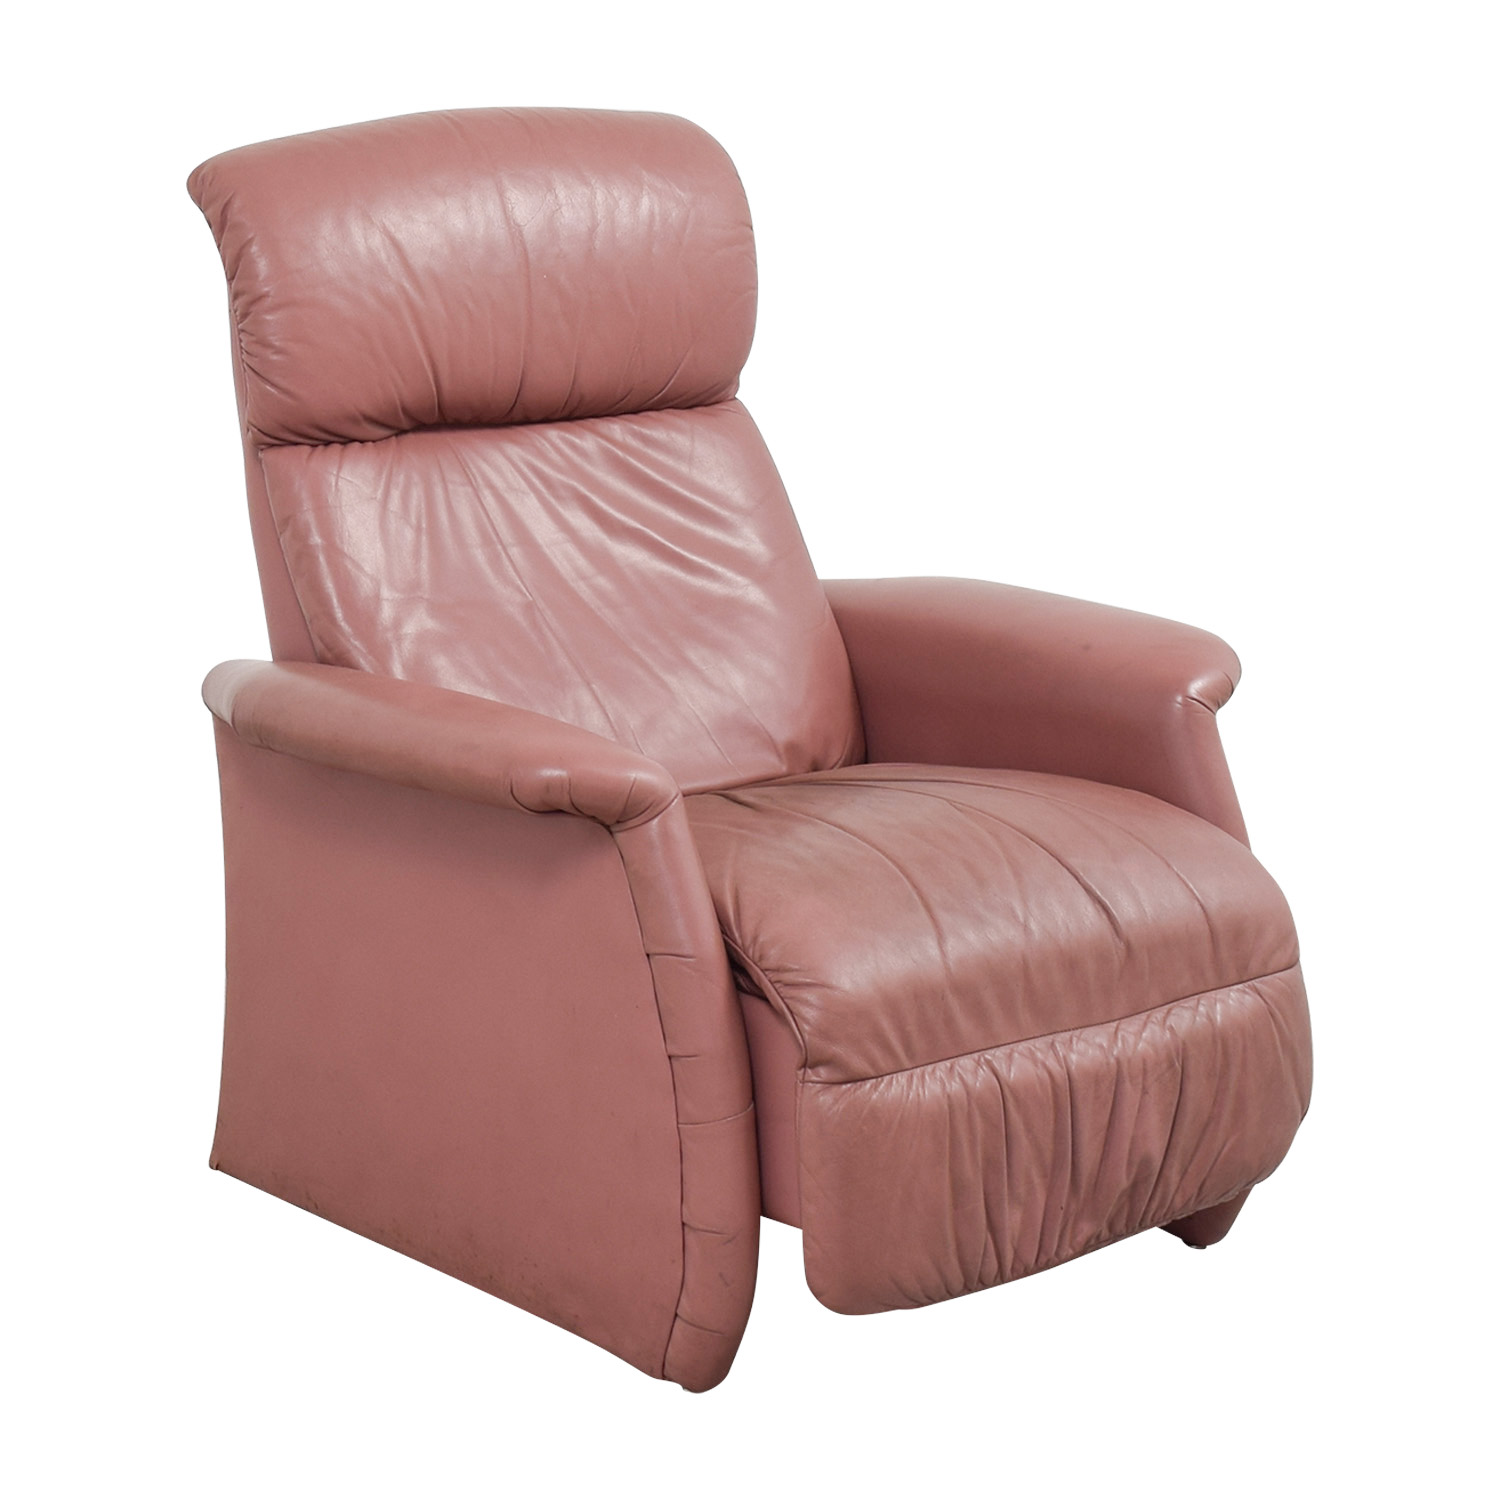 Salmon Leather Recliner Chairs